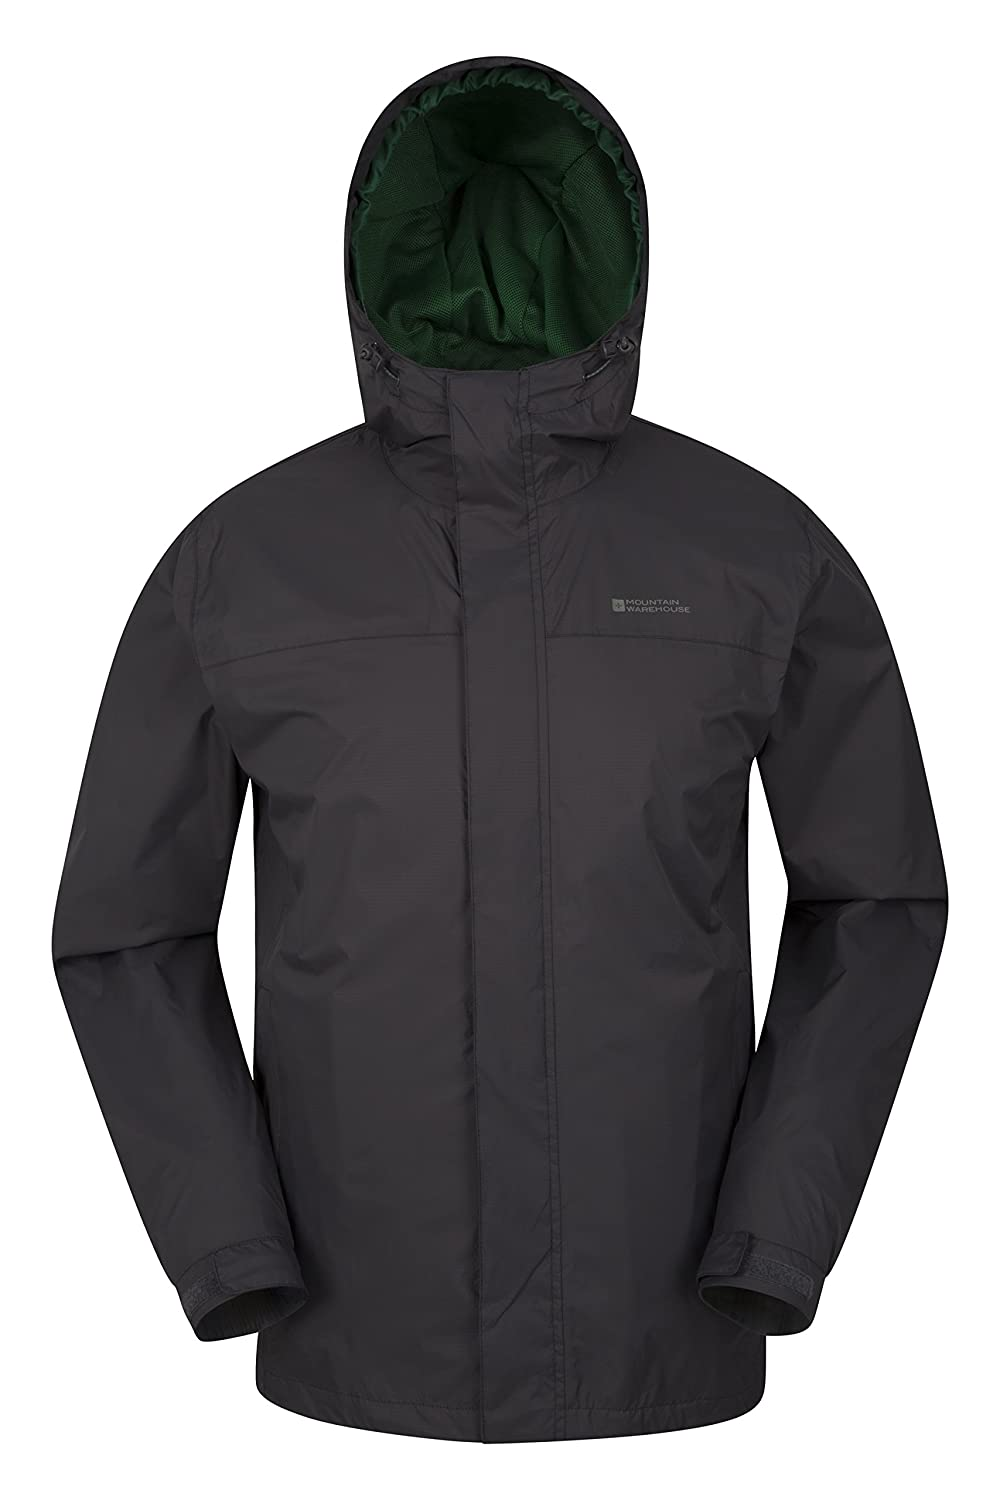 Mountain Warehouse Torrent Mens Rain Jacket - Waterproof with Hood